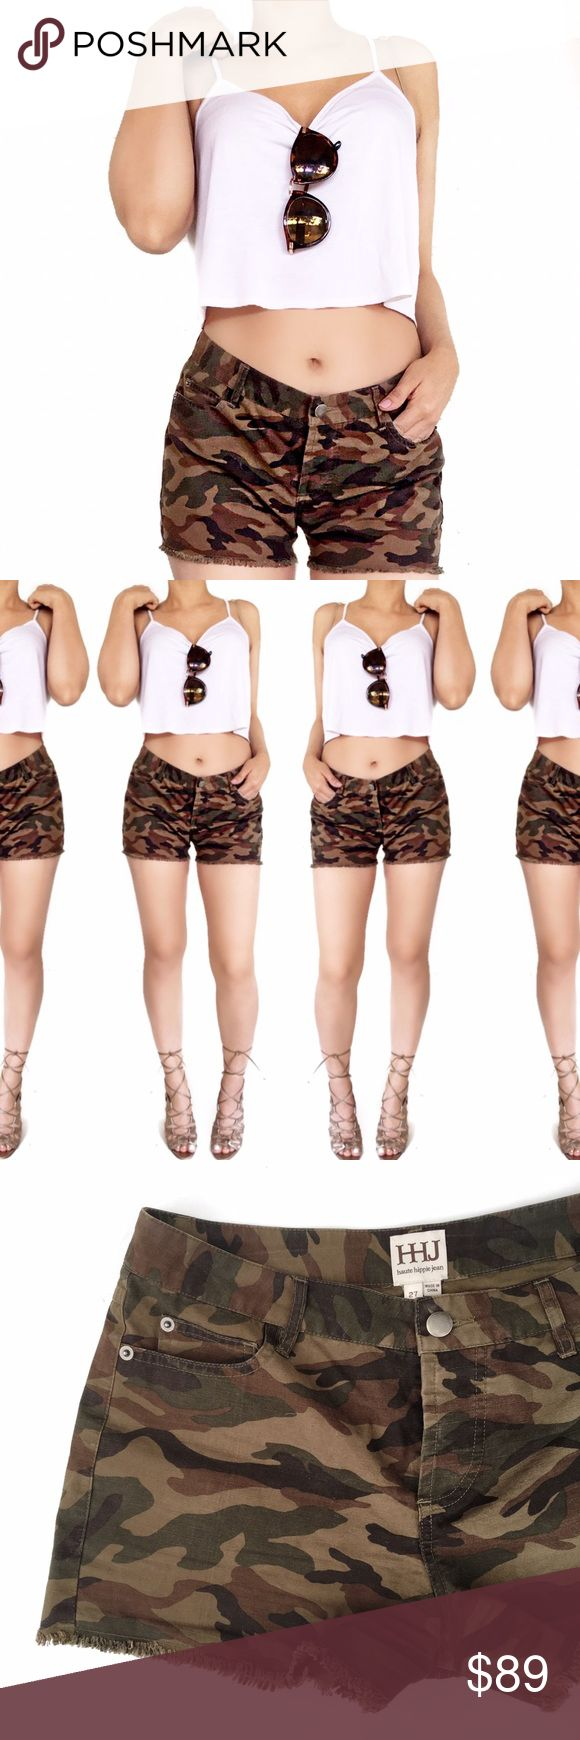 Haute hippie camo frayed shorts Super chic camouflage shorts! No trades. Always open to offers. All photos are of actual item Haute Hippie Shorts